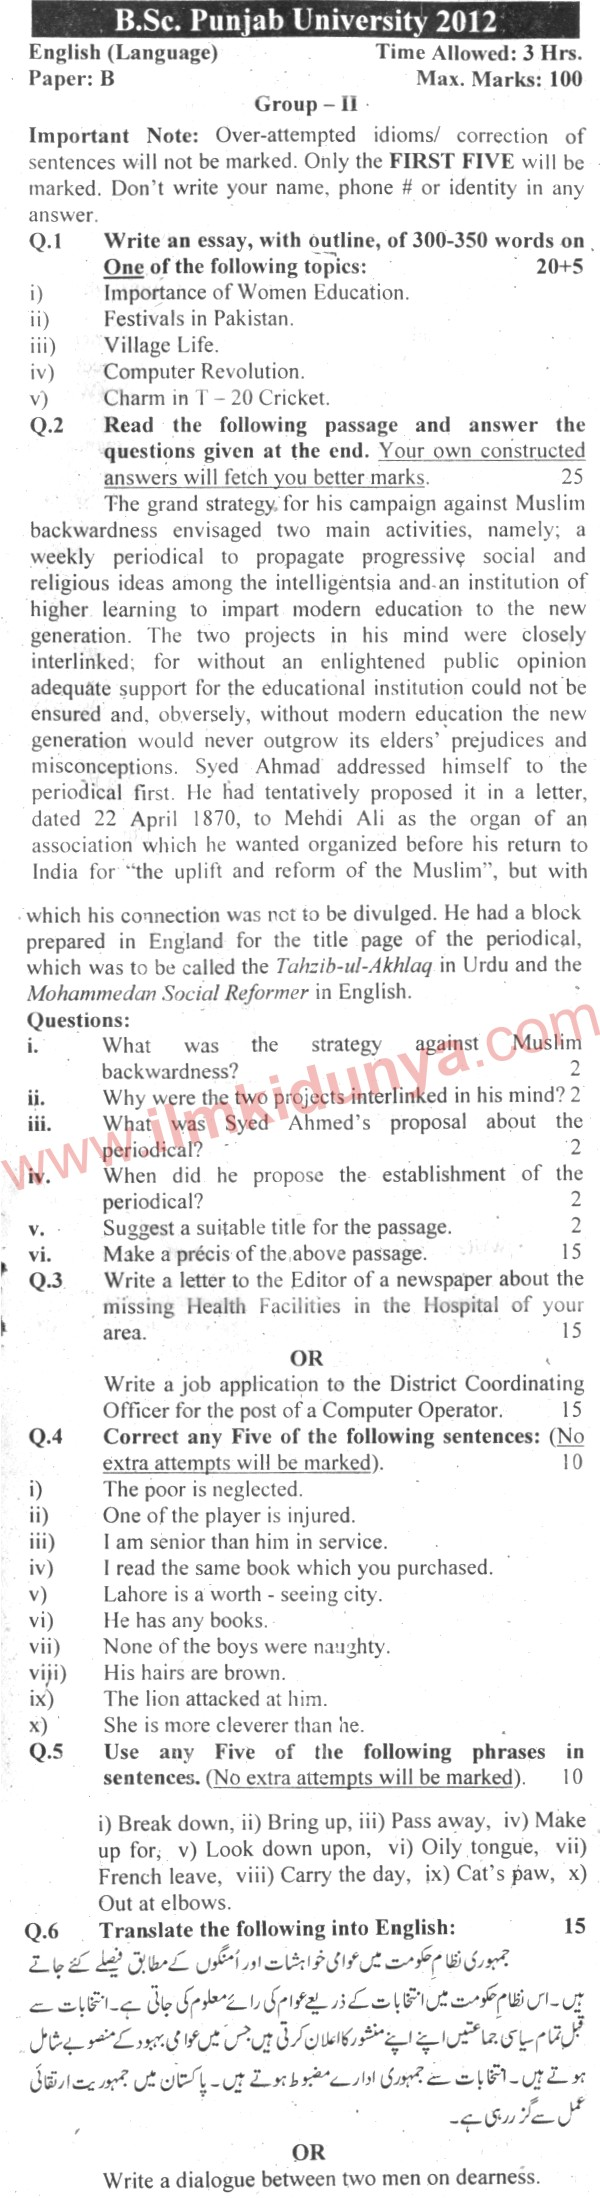 group 2 paper Appsc group 2 previous model question papers 2018 pdf free download pscapgovin appsc group 2 model question paper with answers solved previous question papers 2018 download available here.